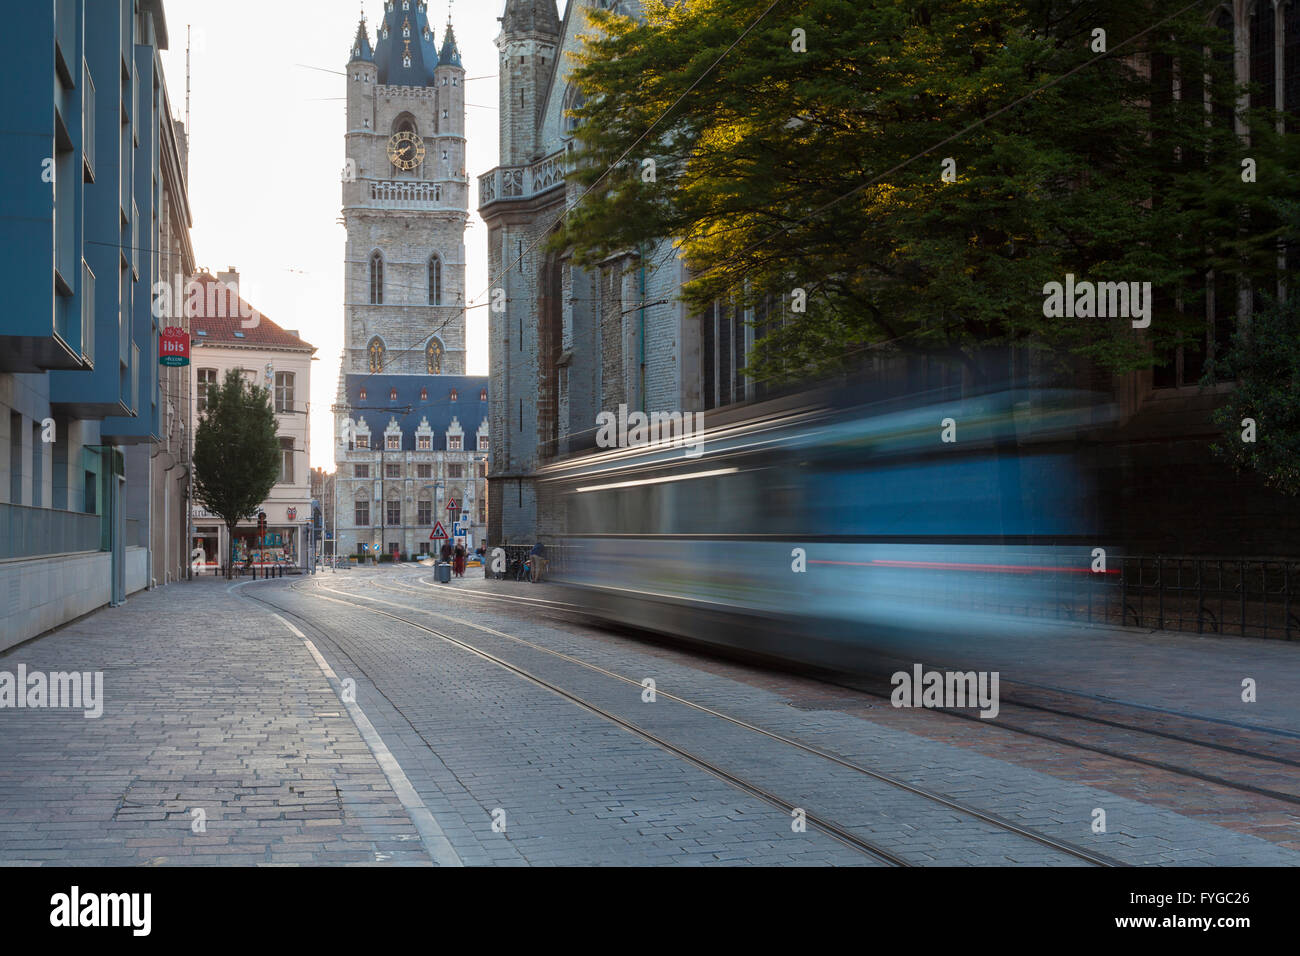 Historic buildings in the center of Ghent and trolley car in movement. - Stock Image